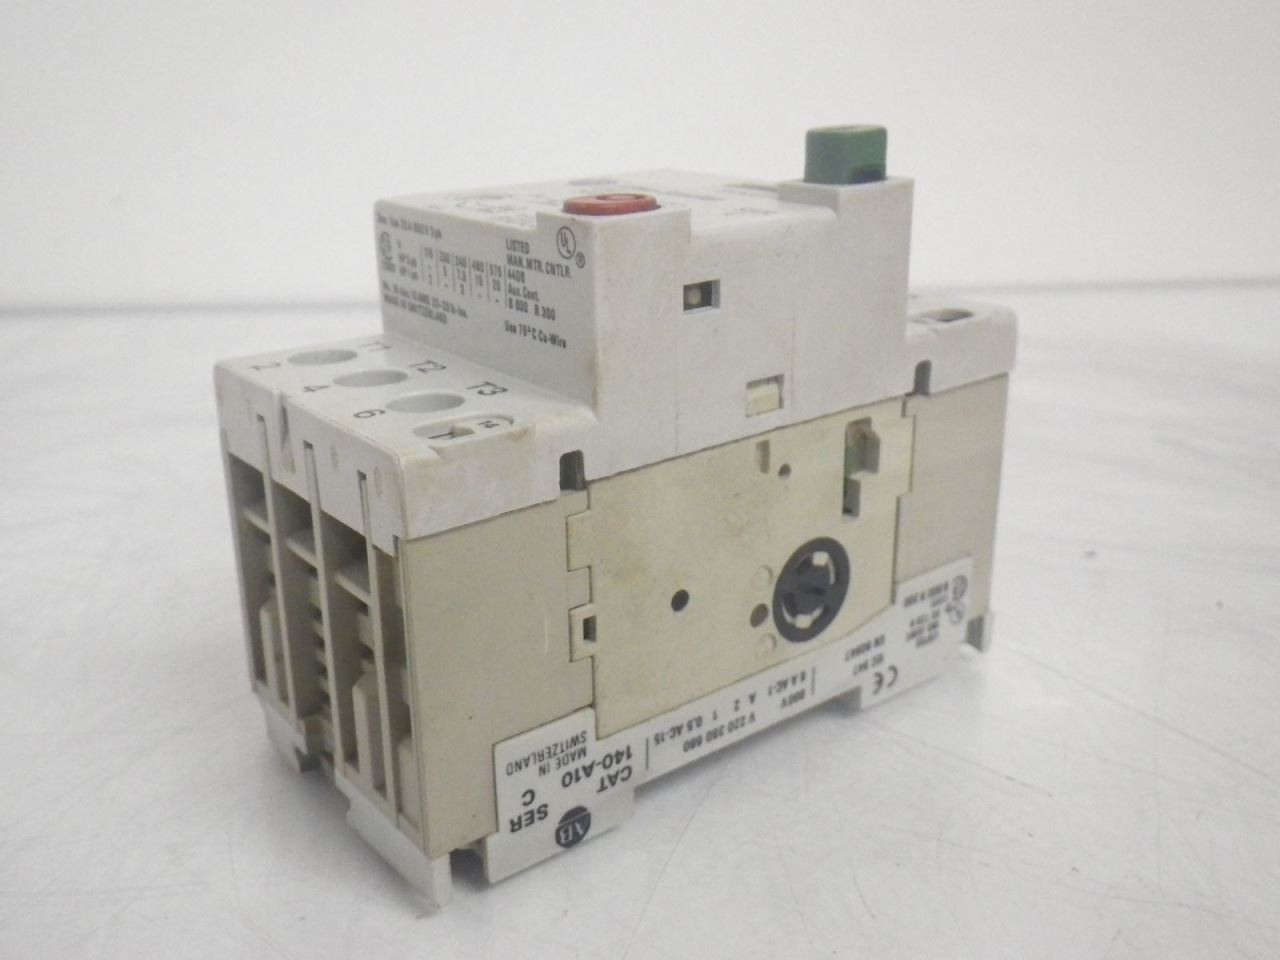 Allen Bradley 140 Mn 0630 140mn0630 Ser C Manual Motor Starter Used And Tested Other